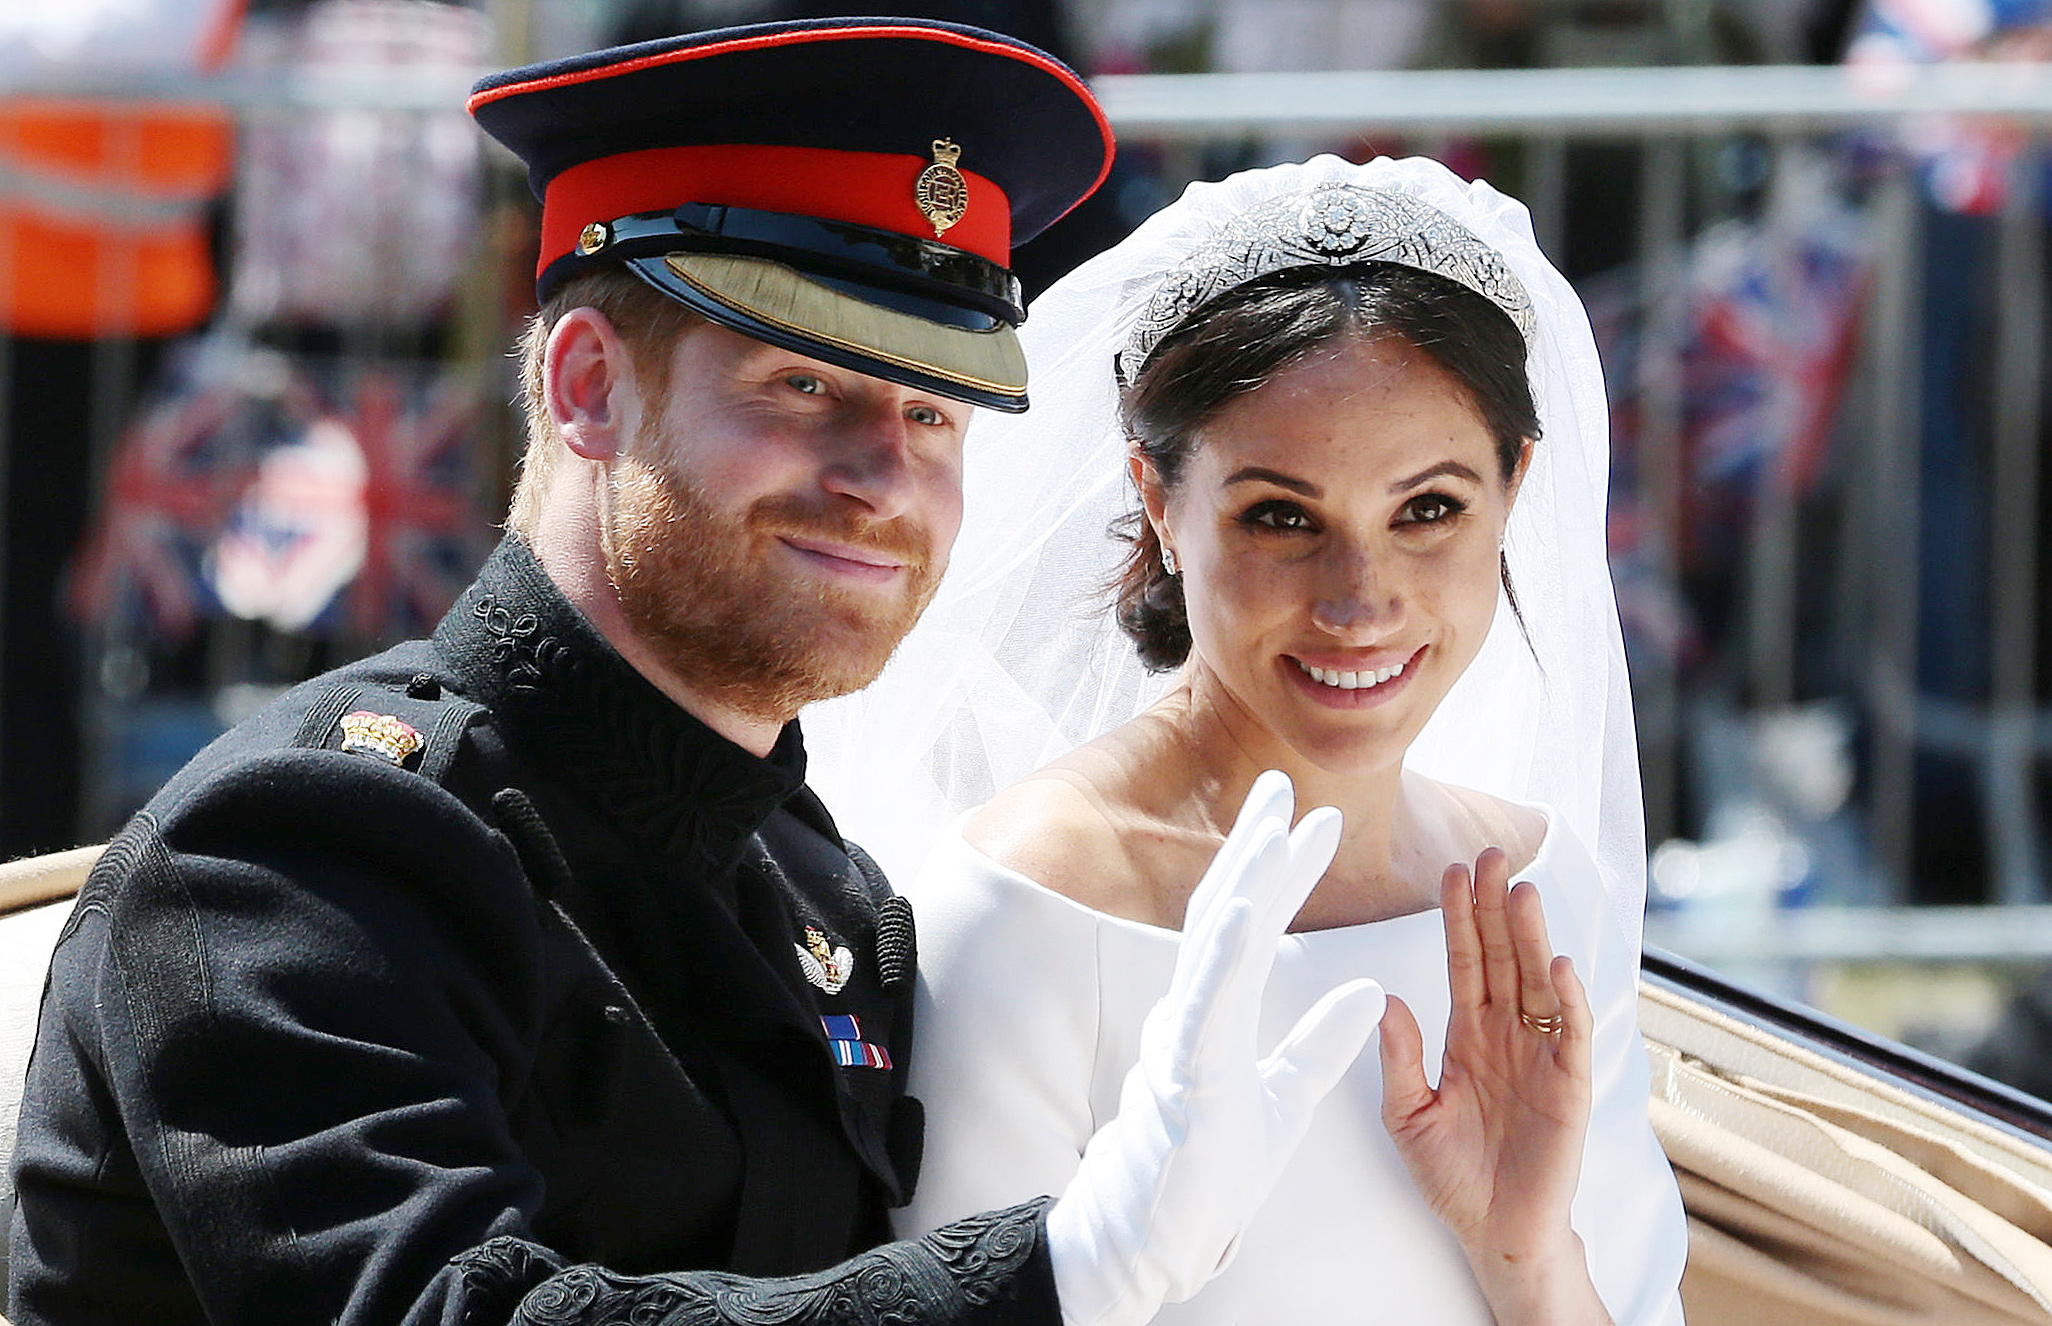 Meghan Markle and Prince Harry Celebrate Their First Anniversary with Never-Before-Seen Wedding Photos